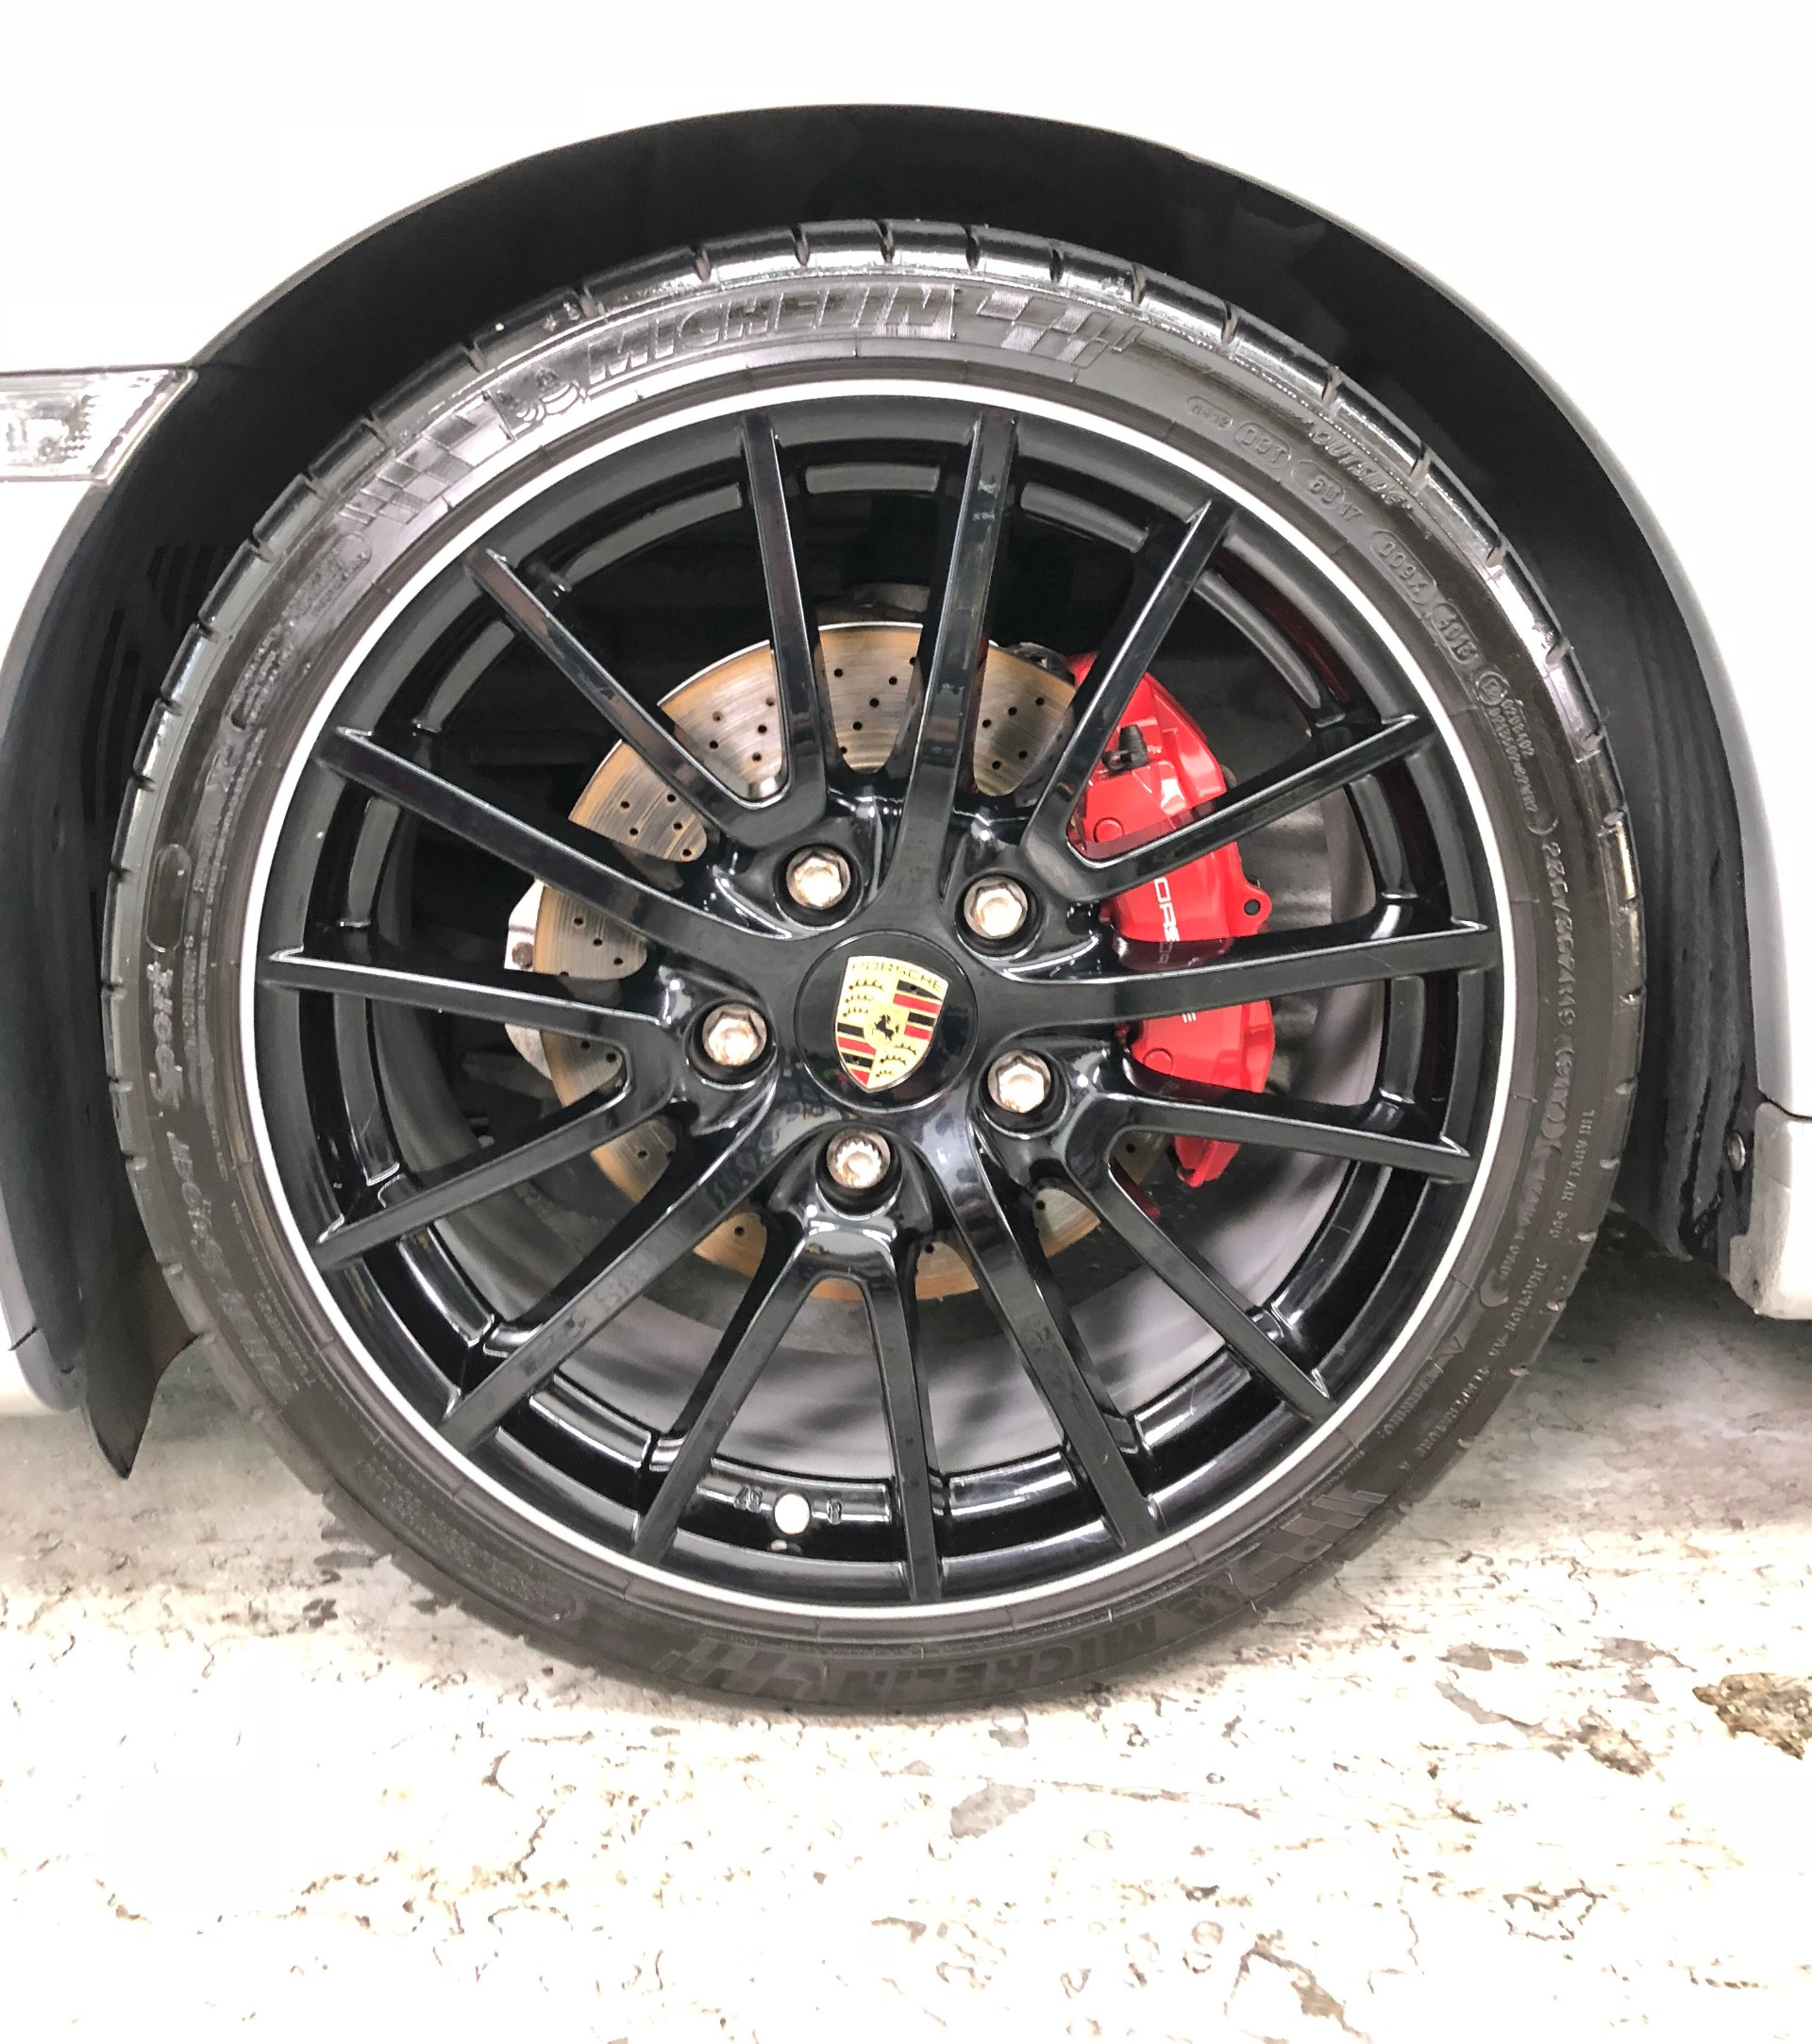 2008 Porsche Cayman Camshaft: Used 2008 Porsche Cayman S Sport For Sale ($39,999